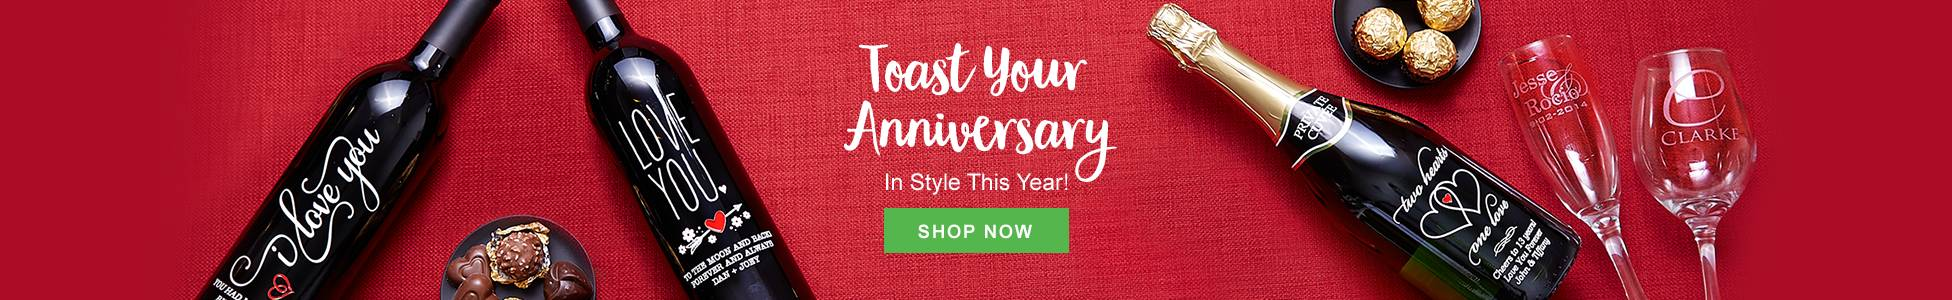 Toast your anniversary